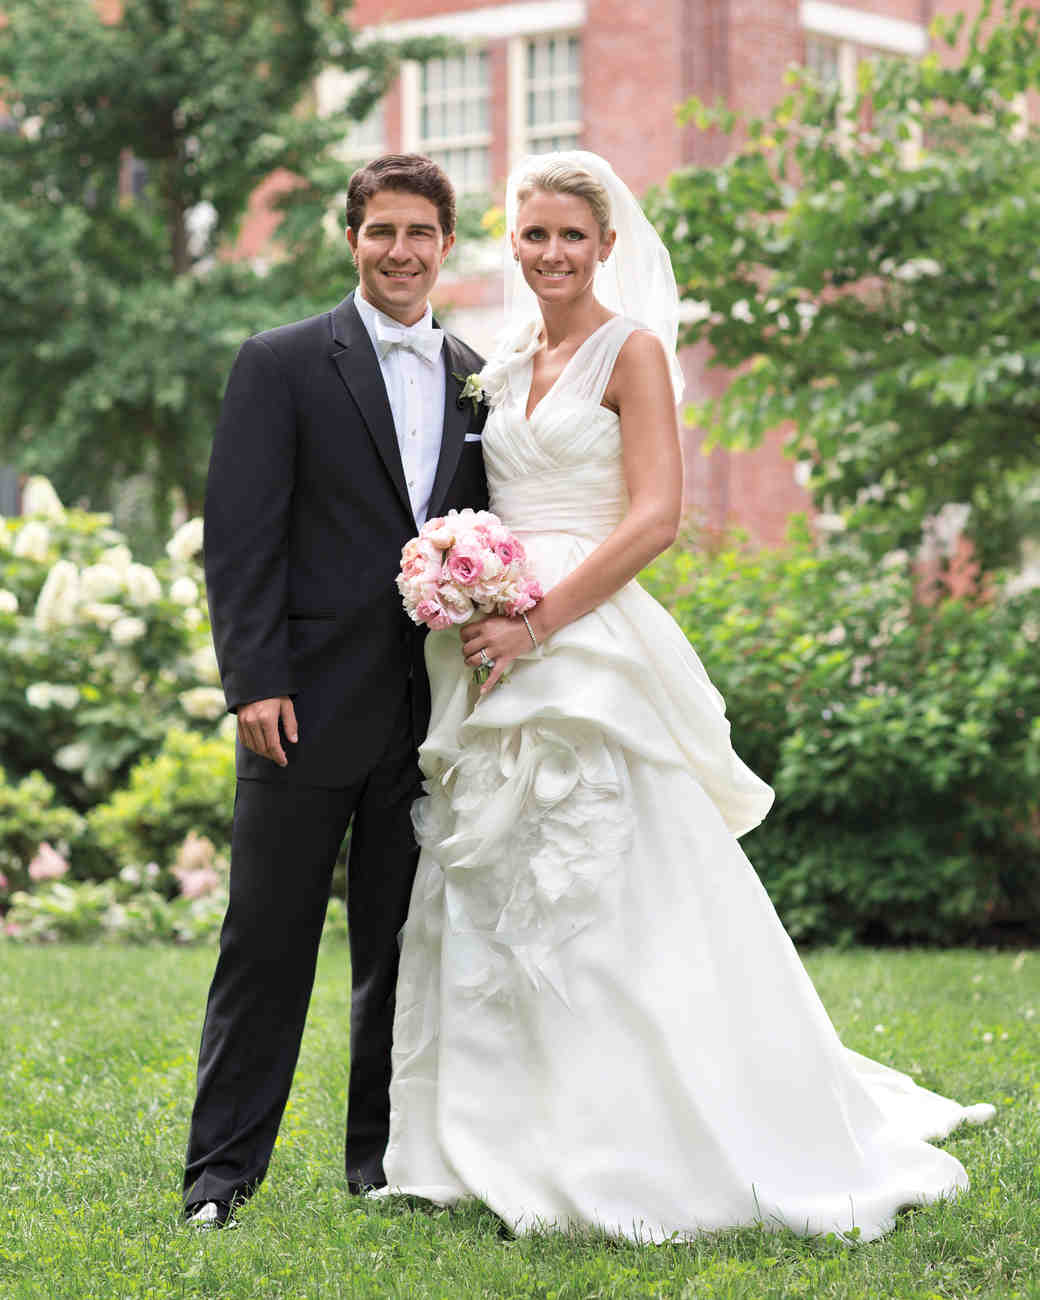 Black Tie Wedding Ideas: A Traditional And Formal Pink-Colored Wedding In